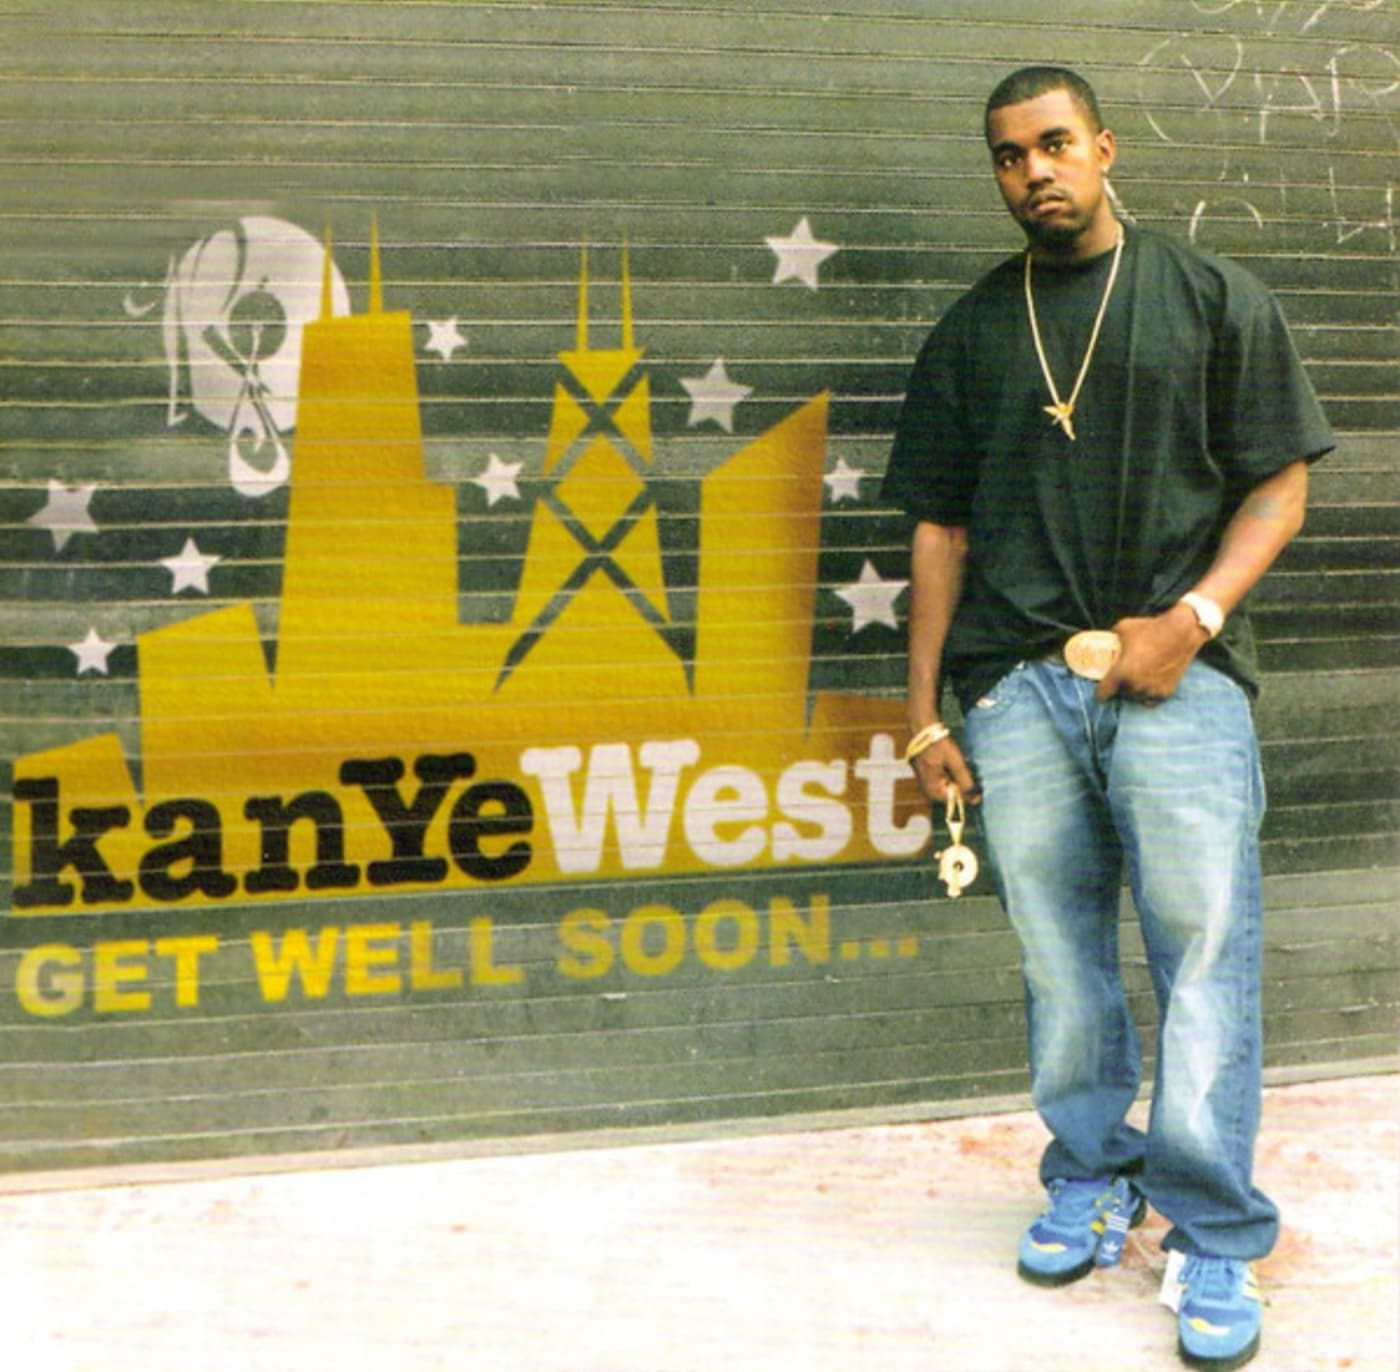 rapper mix tape get well soon kanye west